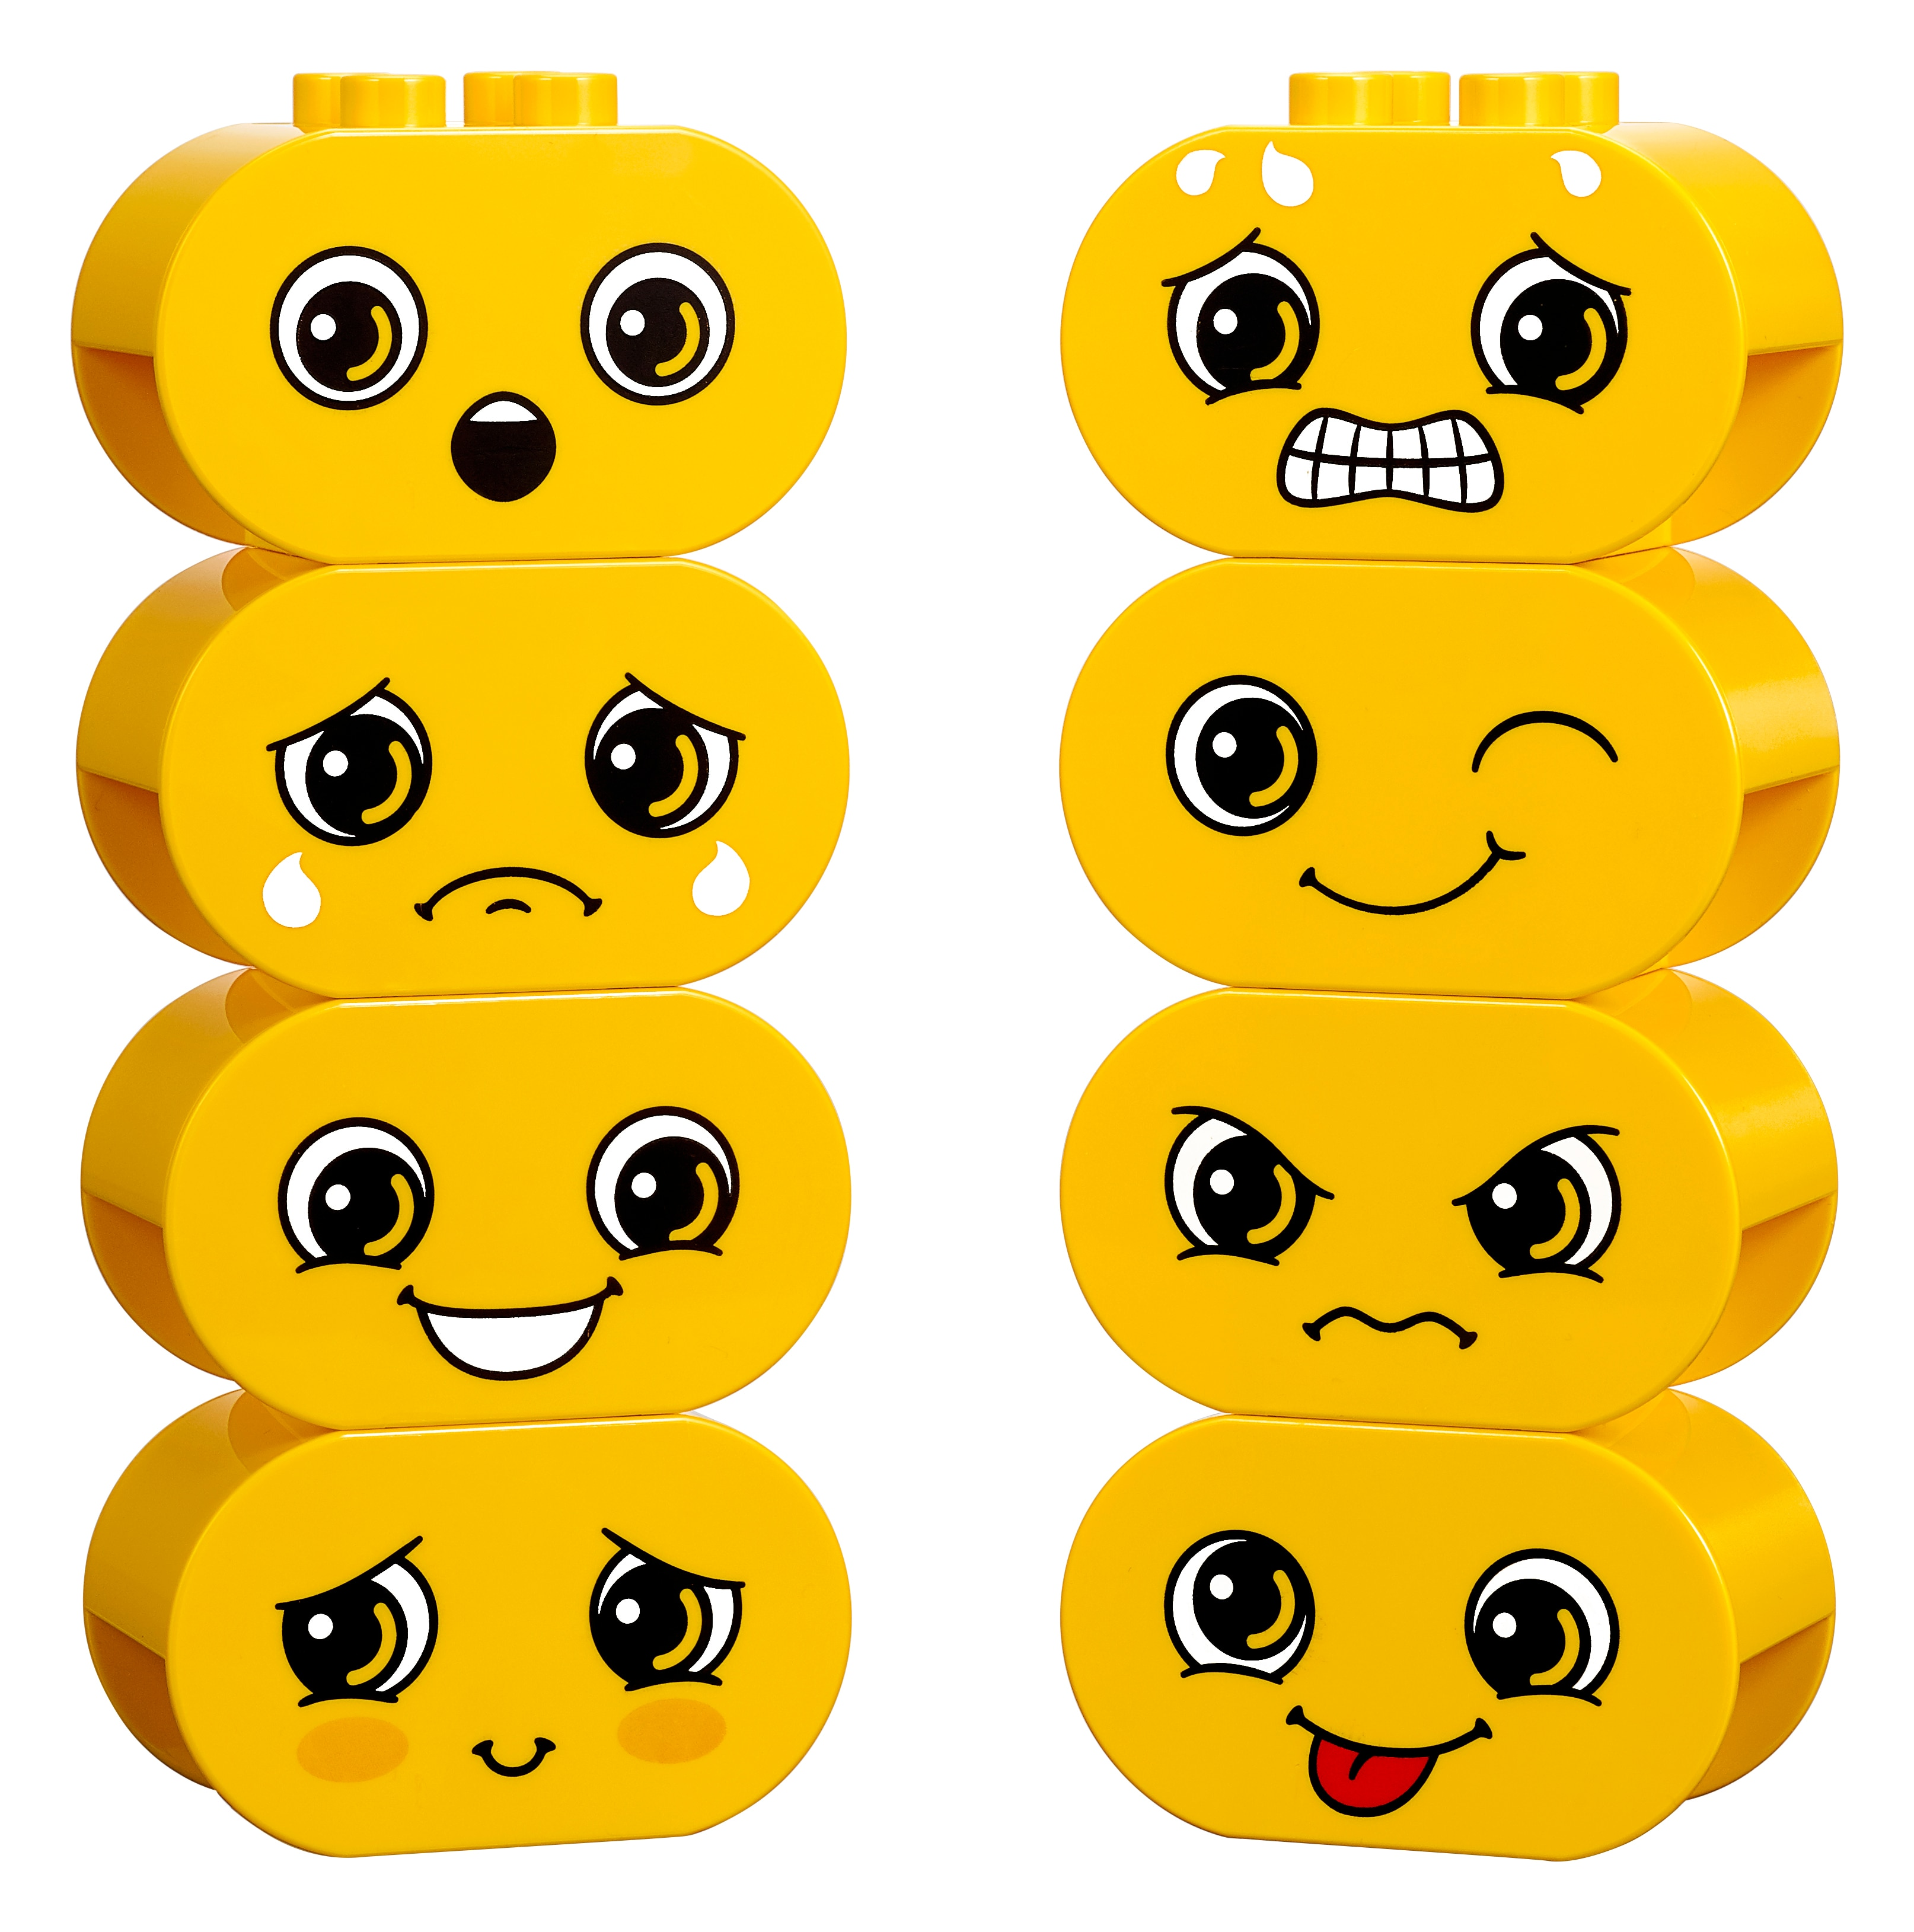 "Build Me ""Emotions"" by LEGO® Education"